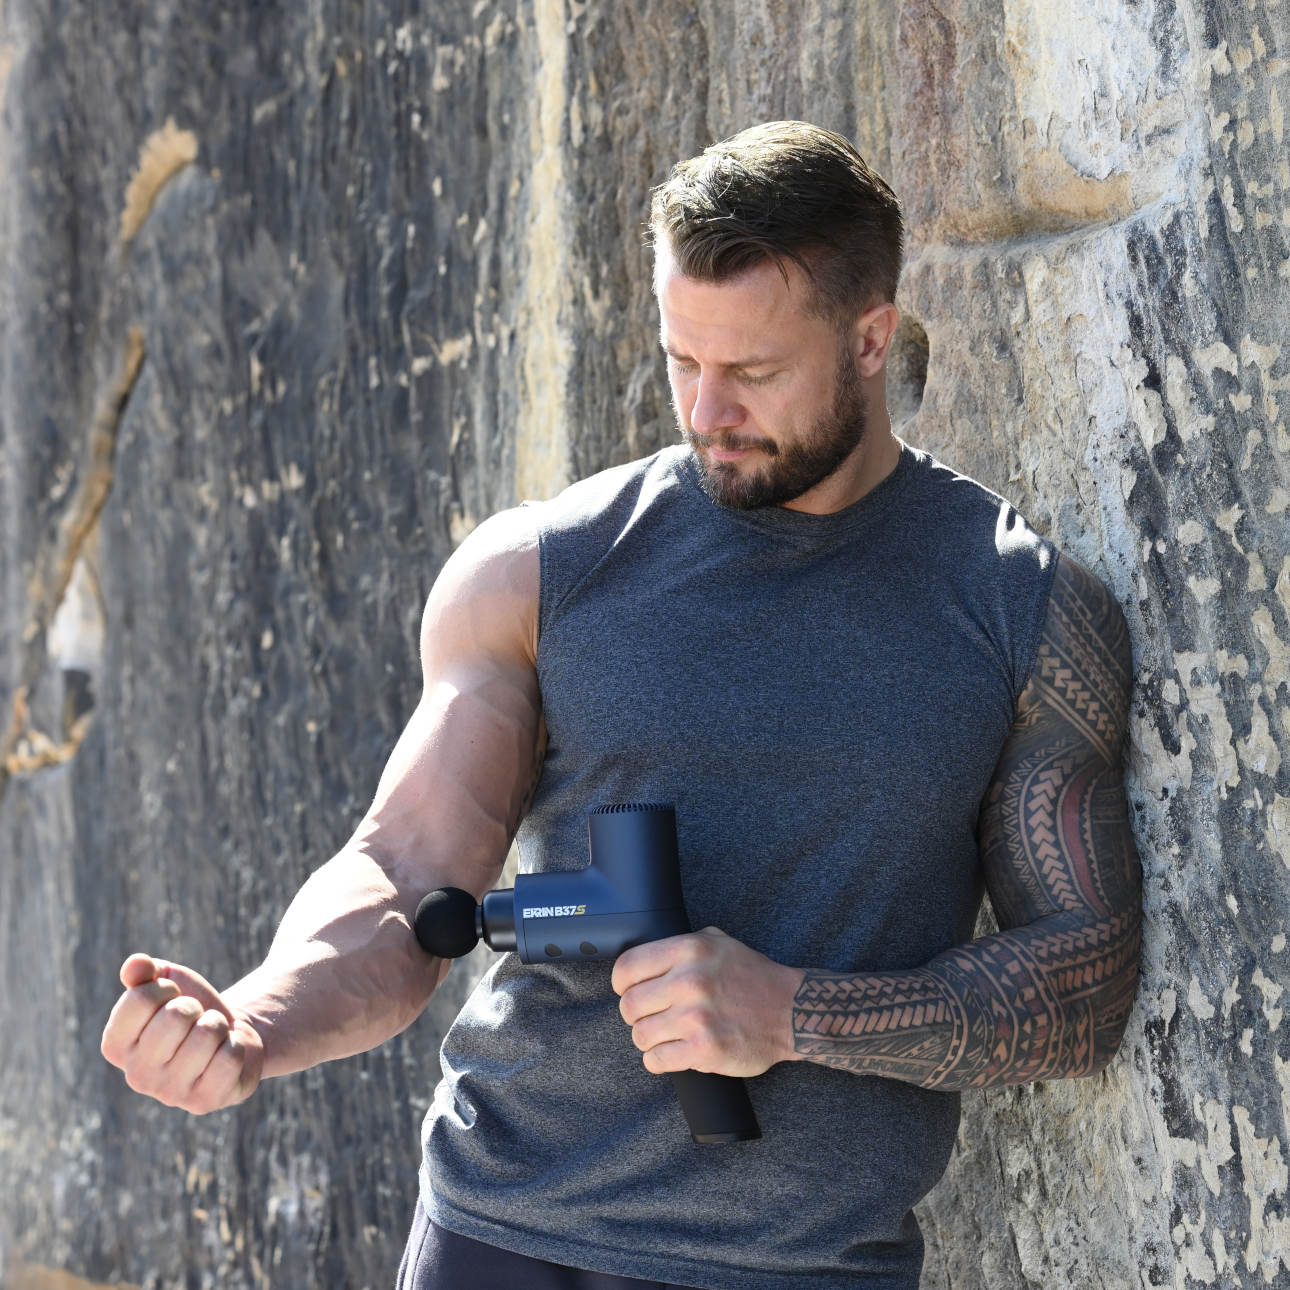 Bobby Holland Hanton outside in the sun leaning against a rock and massaging his forearm with the Ekrin B37S